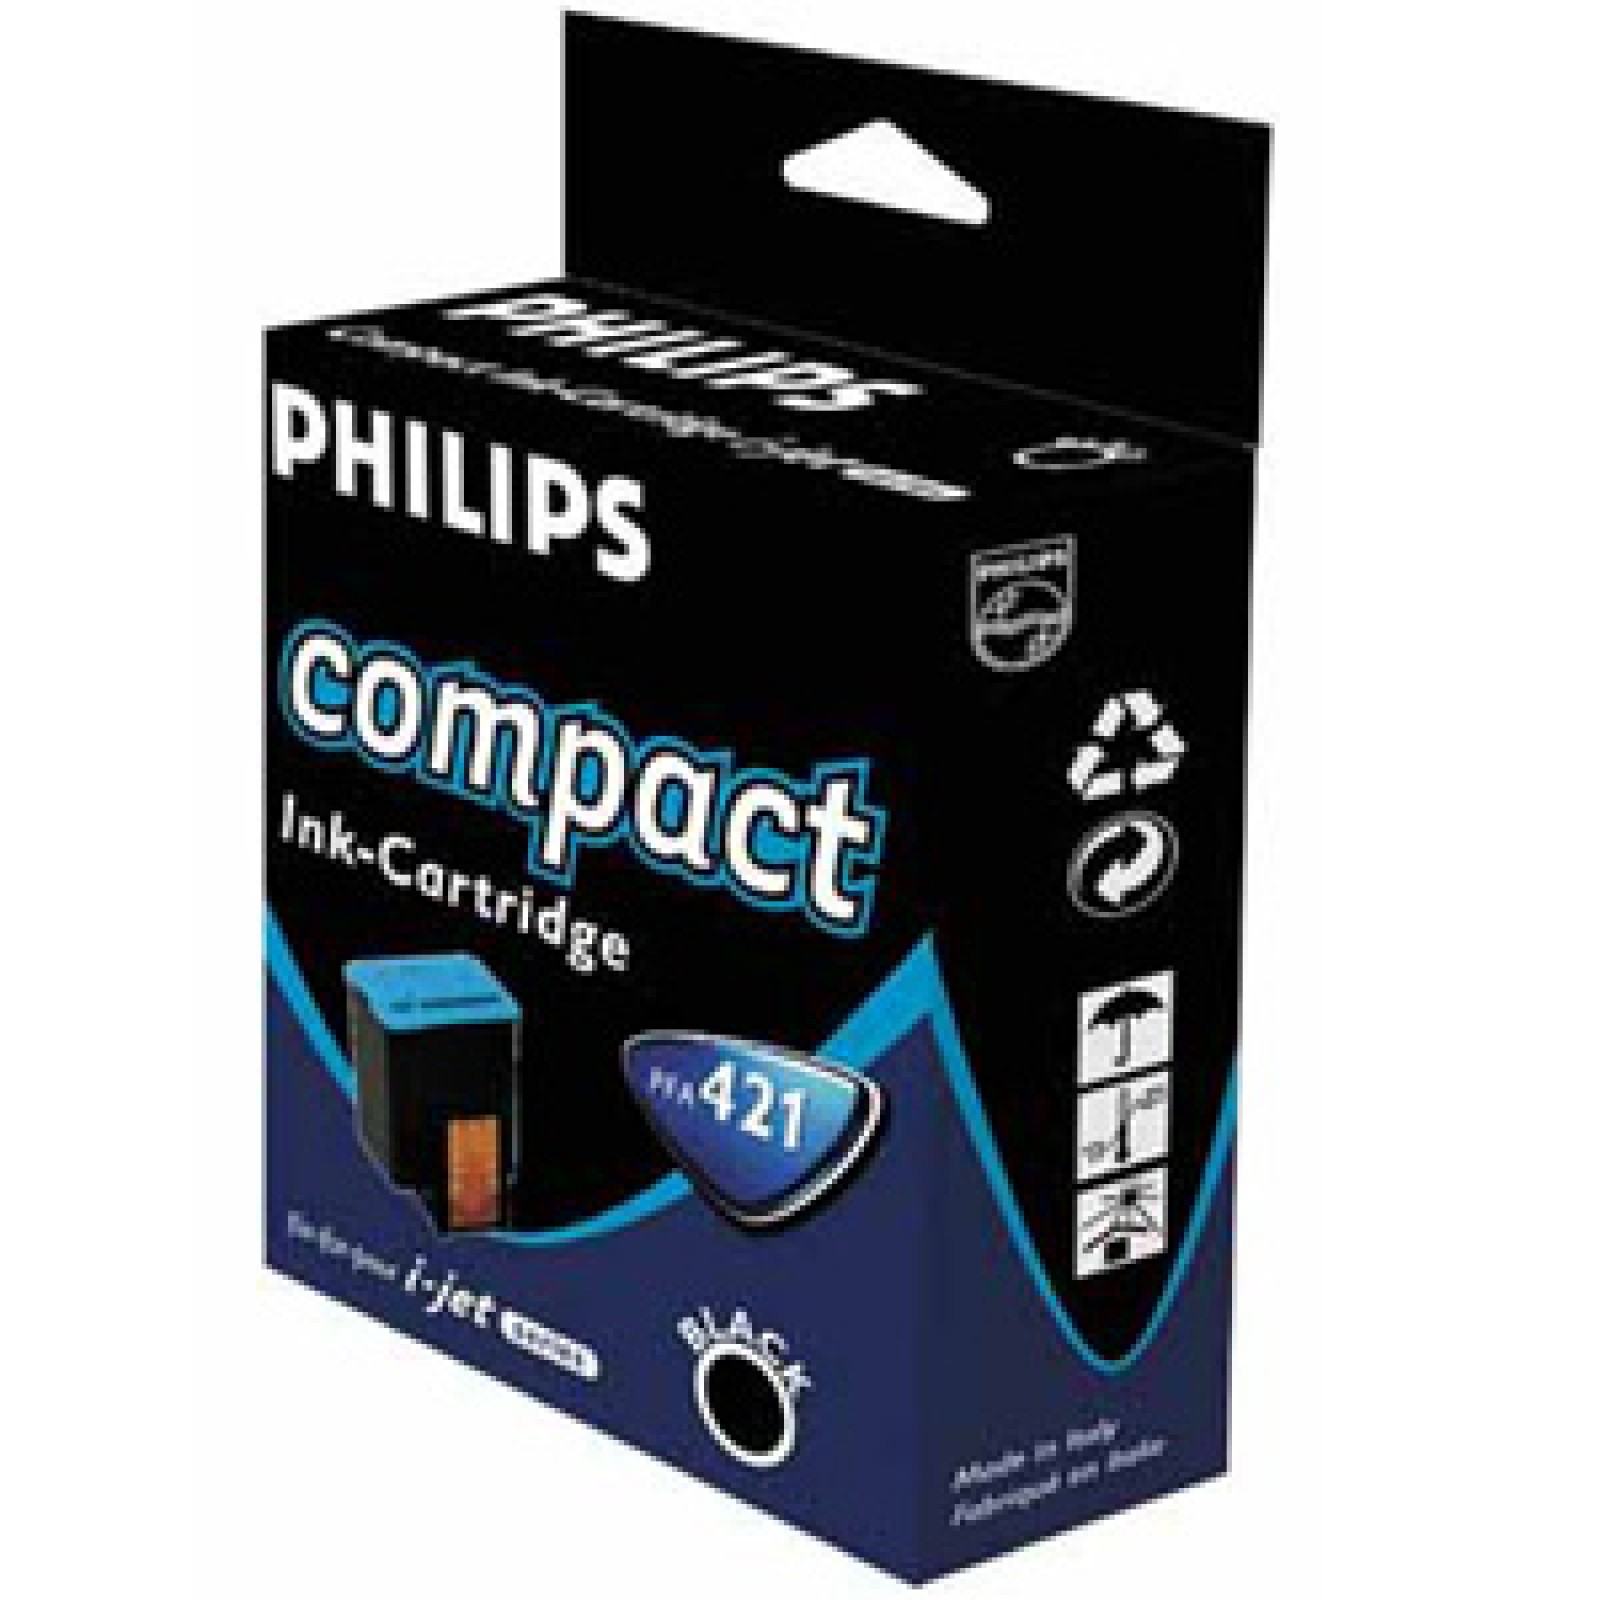 Philips PFA-421 Druckerpatrone black PFA-421